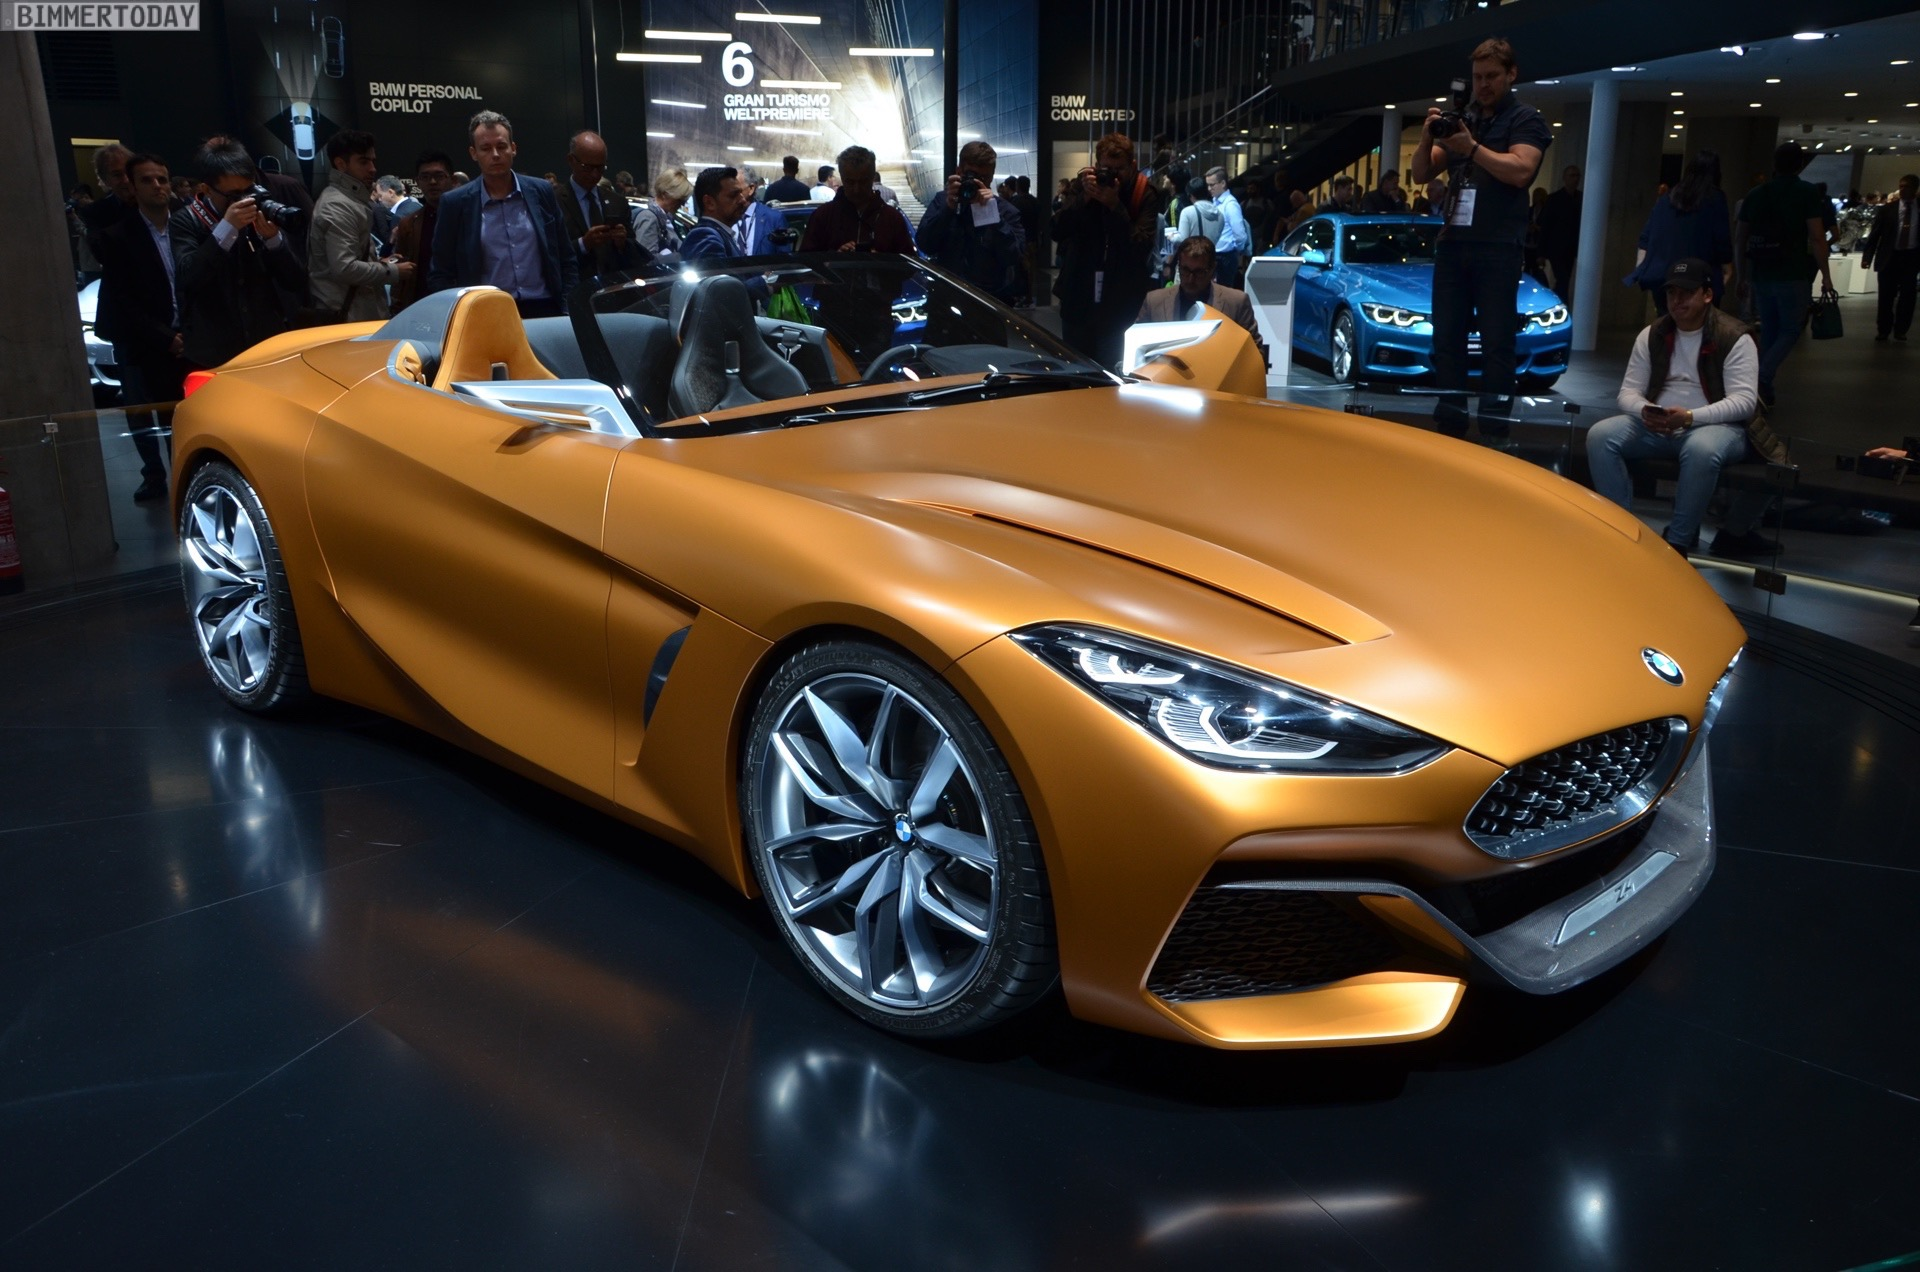 Iaa 2017 Bmw Z4 G29 Roadster Als Concept Car In Frankfurt